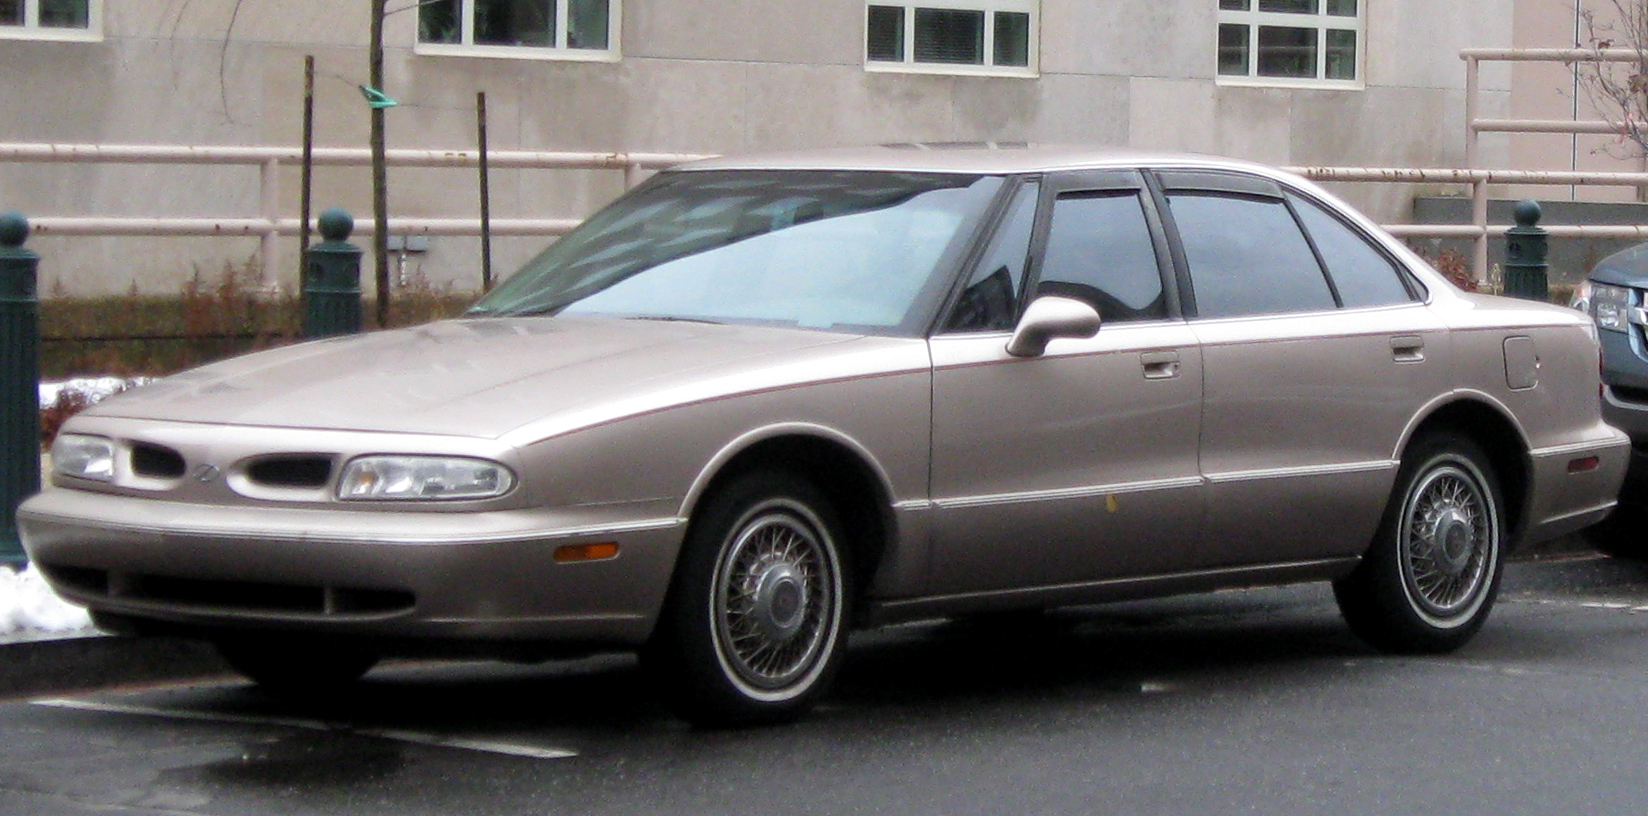 1996 Oldsmobile Eighty Eight Pictures Information And Specs 95 M3 Fuse Box Cars 5